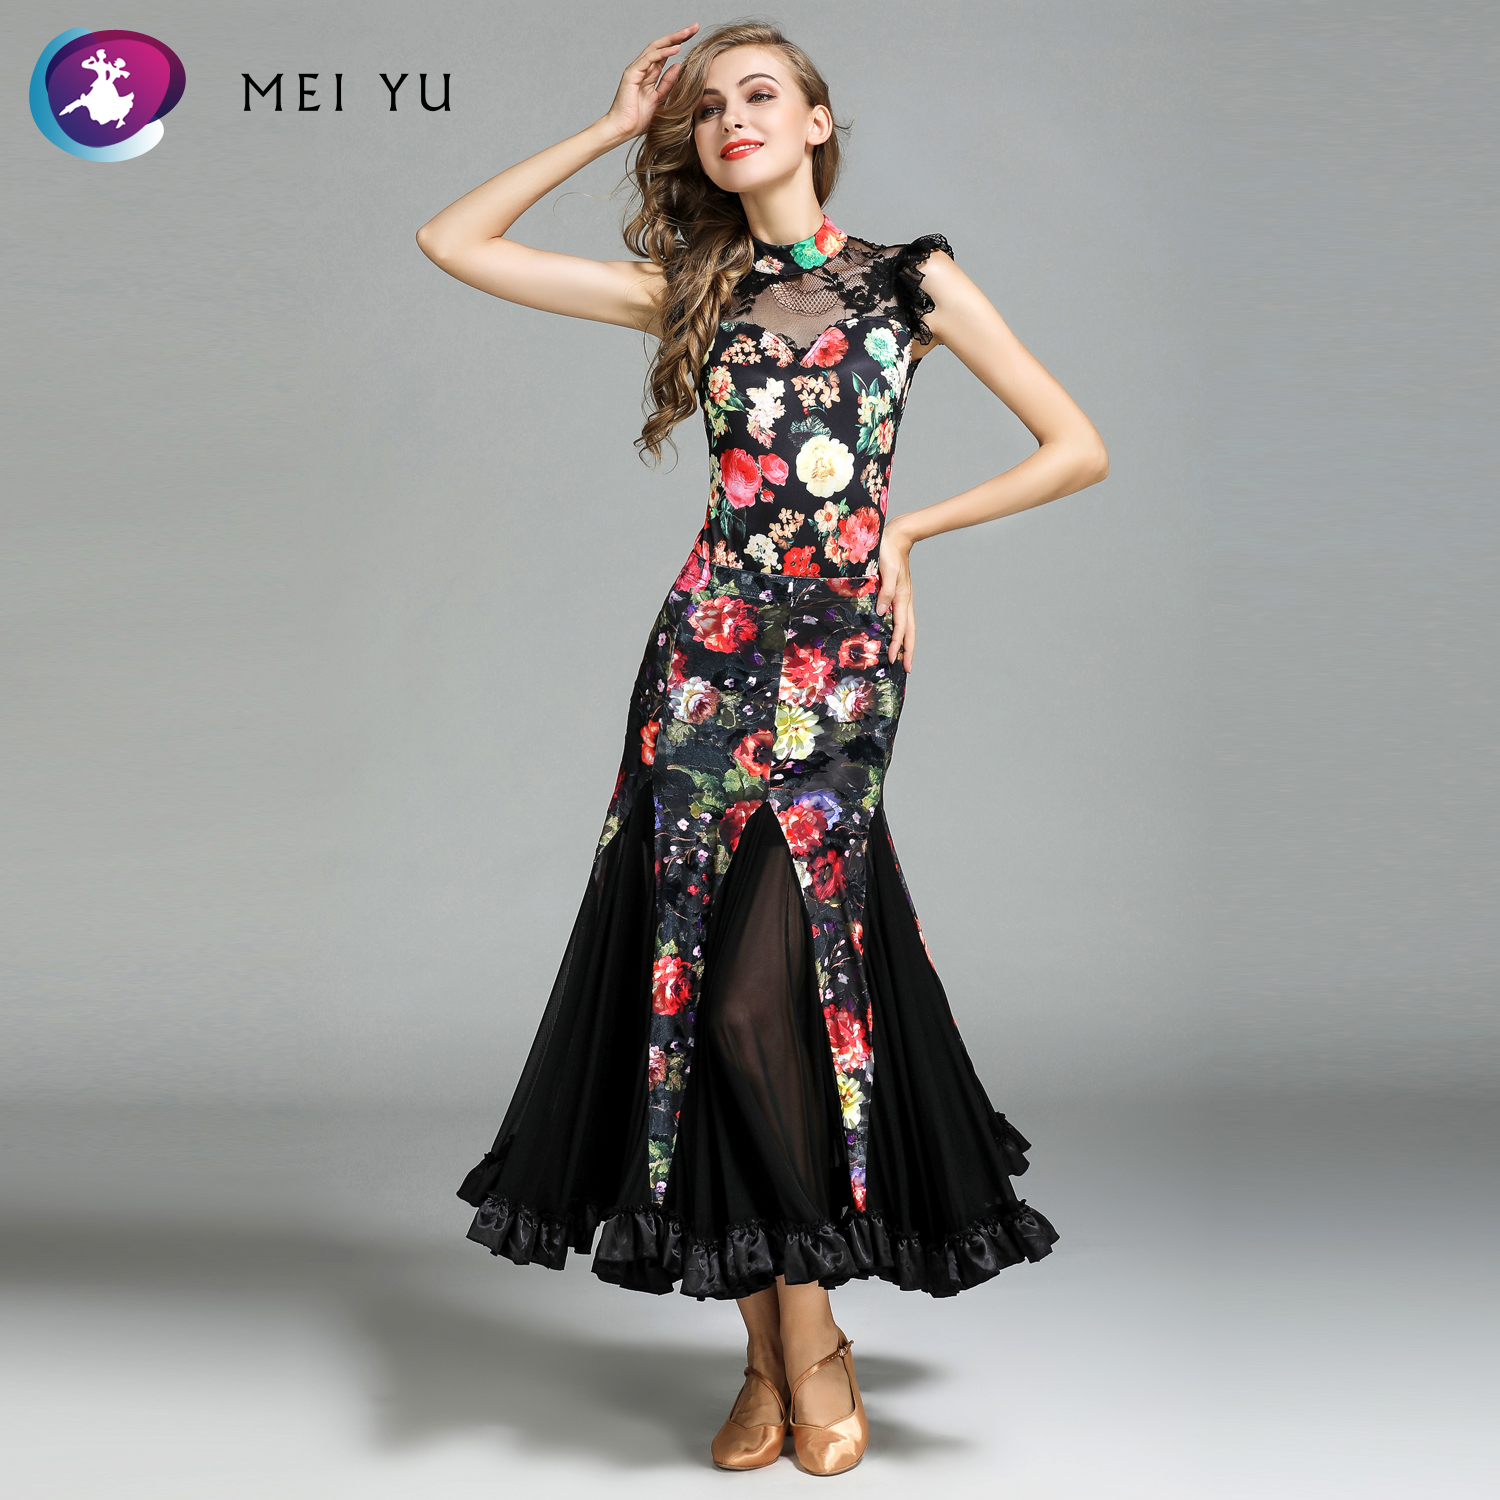 Dashing Mei Yu My771 And My778 Modern Dance Costume Top And Skirt Suits Dance Dress Ballroom Costume Women Lady Evening Party Dress Stage & Dance Wear Ballroom